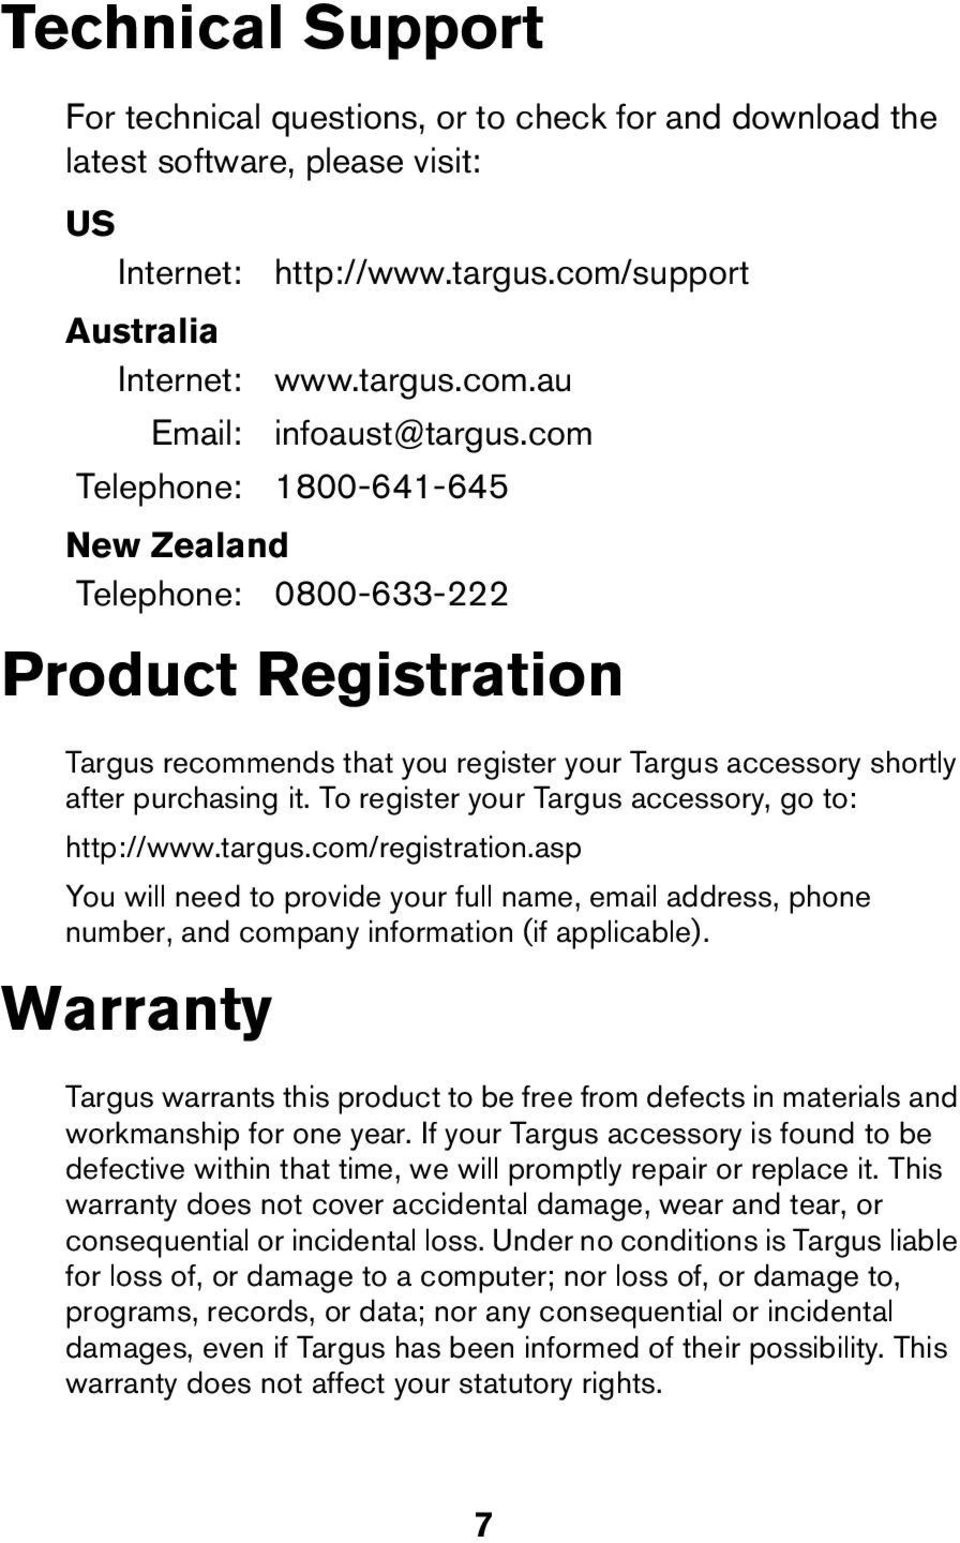 To register your Targus accessory, go to: http://www.targus.com/registration.asp You will need to provide your full name, email address, phone number, and company information (if applicable).